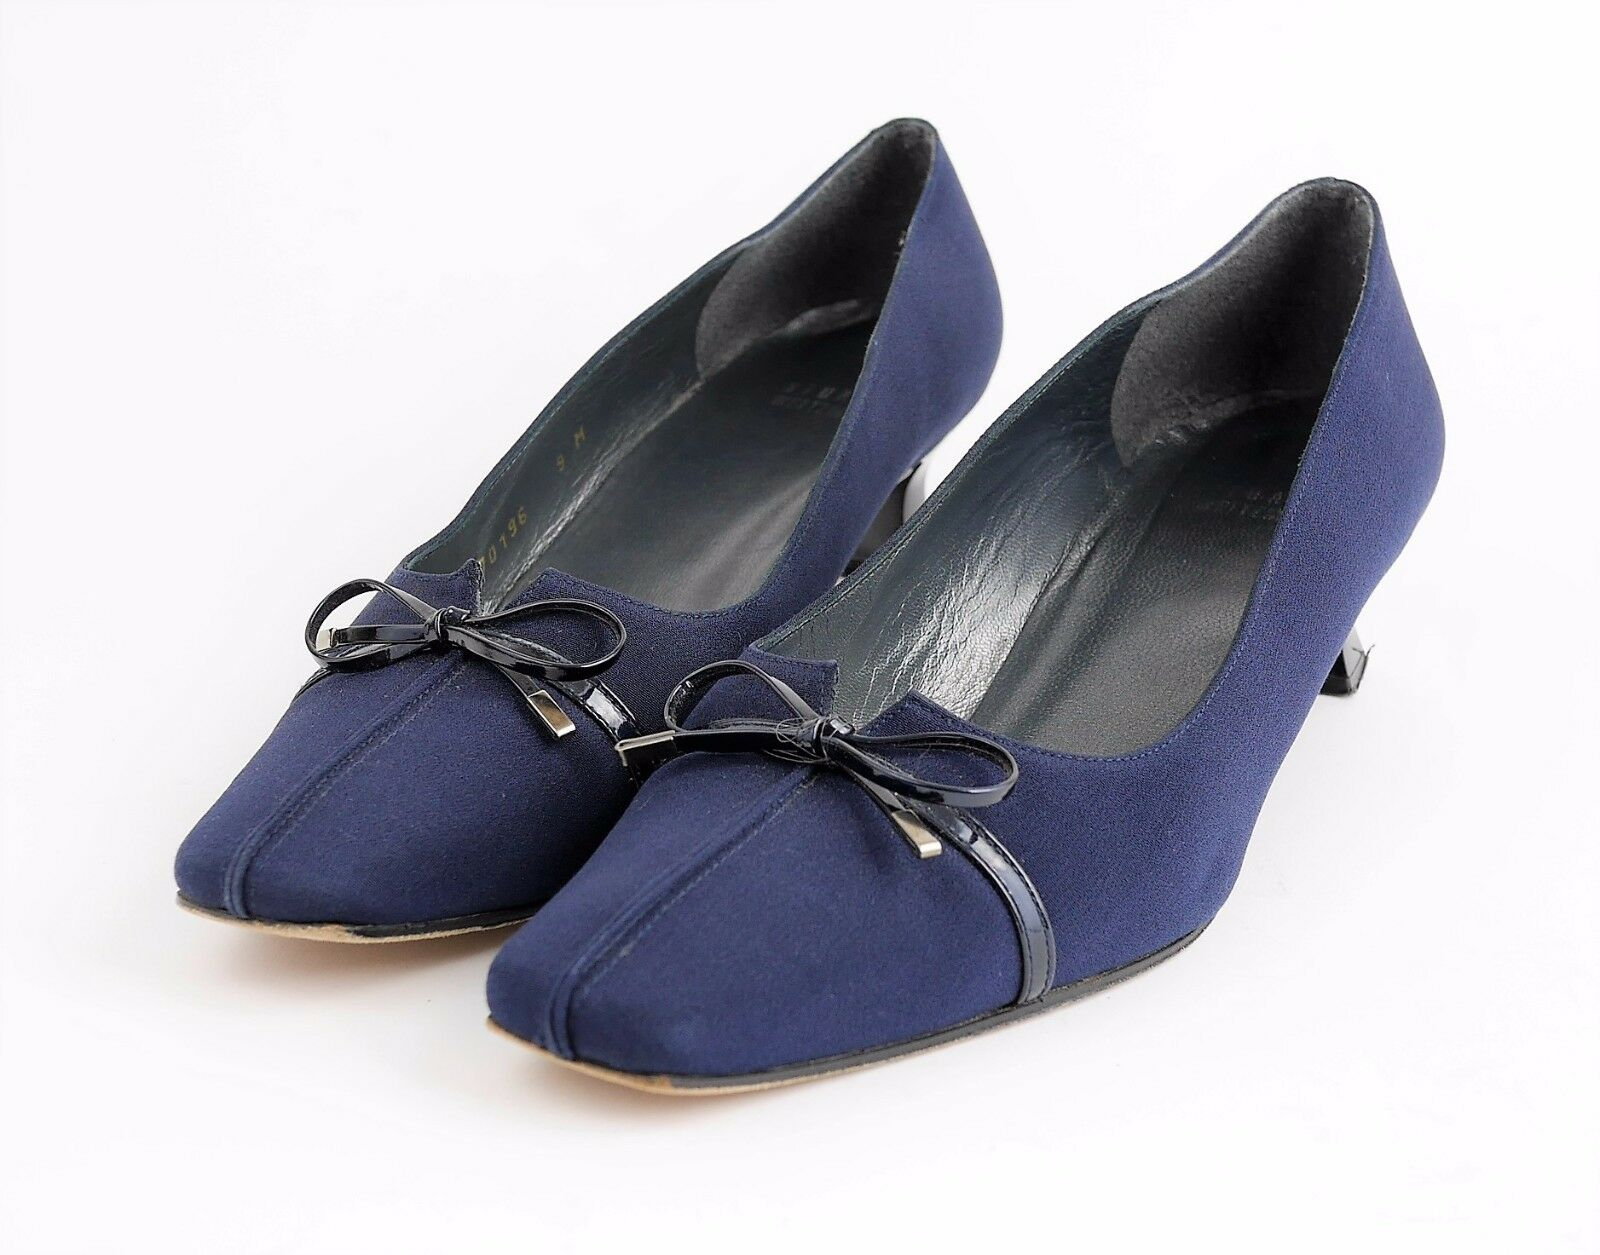 STUART WEITZMAN Navy bluee Satin Bow Accent High Heels Classic Pumps - WOMEN'S 9